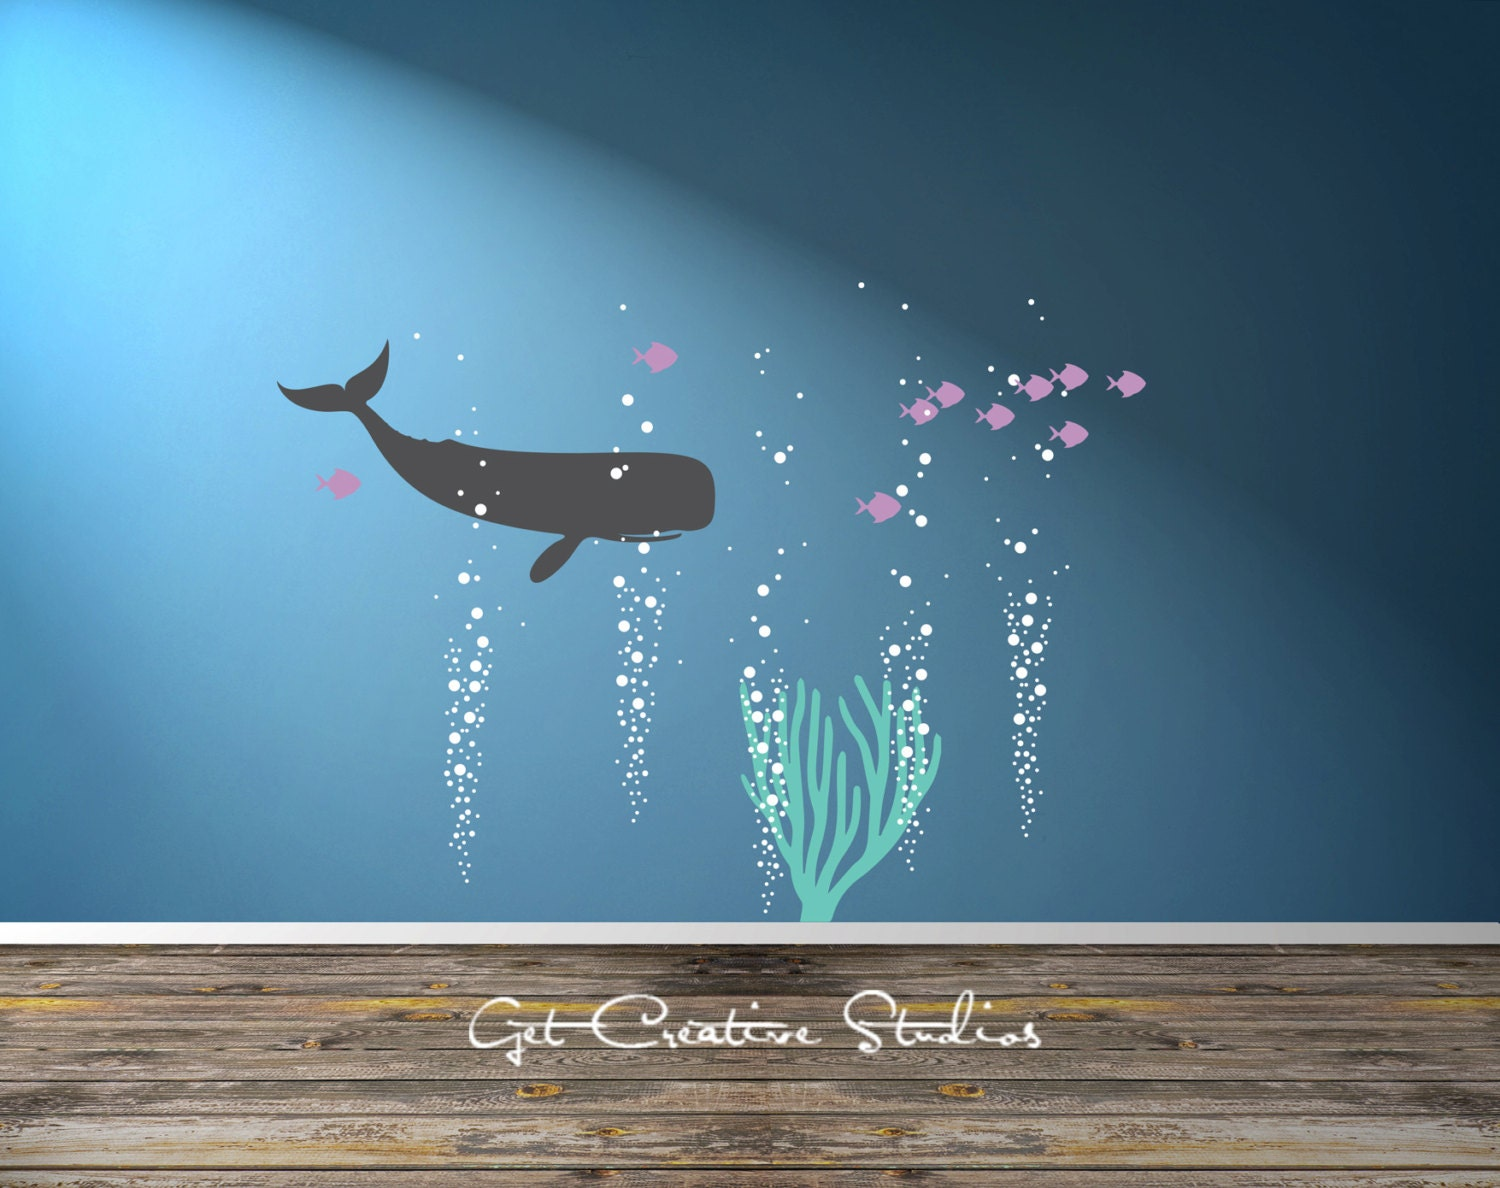 Wall decal ocean color the walls of your house wall decal ocean whale decal school of fish decal ocean scene decal whale wall amipublicfo Choice Image